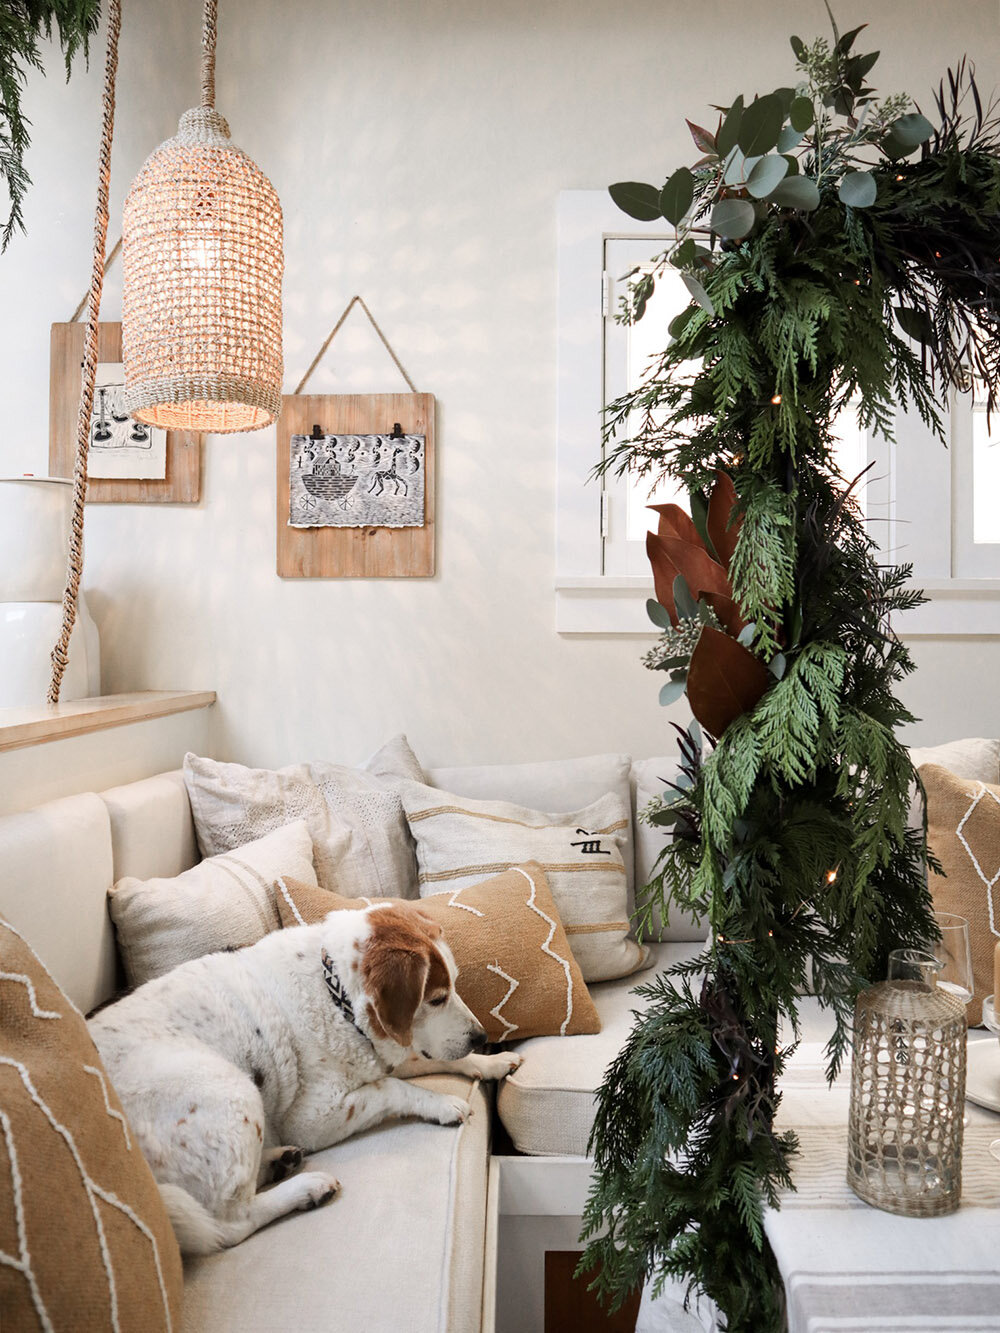 tiny_house_holiday_decor_small_space_tabletop_15.jpg